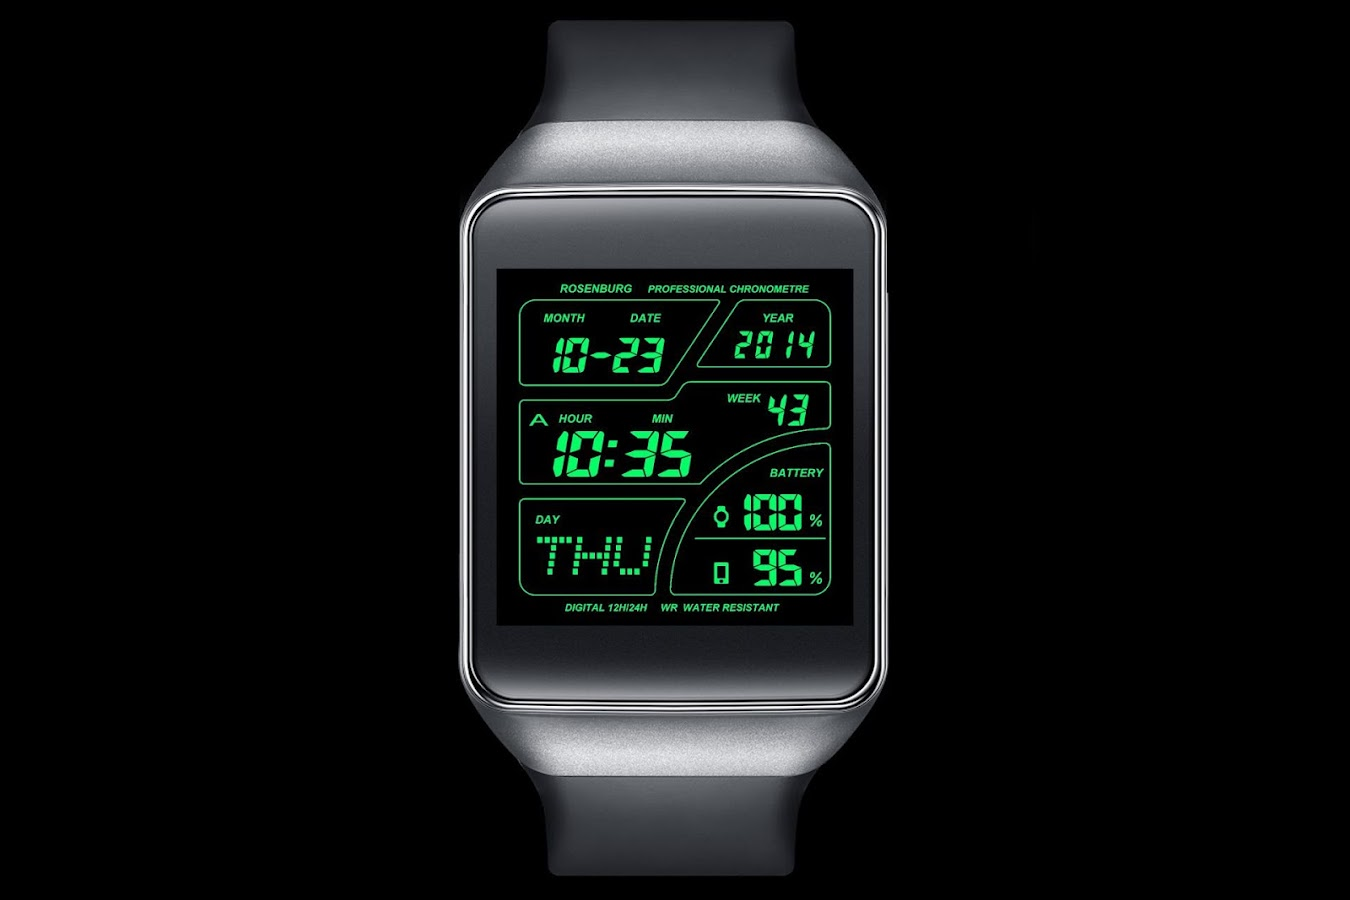 Facer android wear - A41 Watchface For Android Wear Screenshot